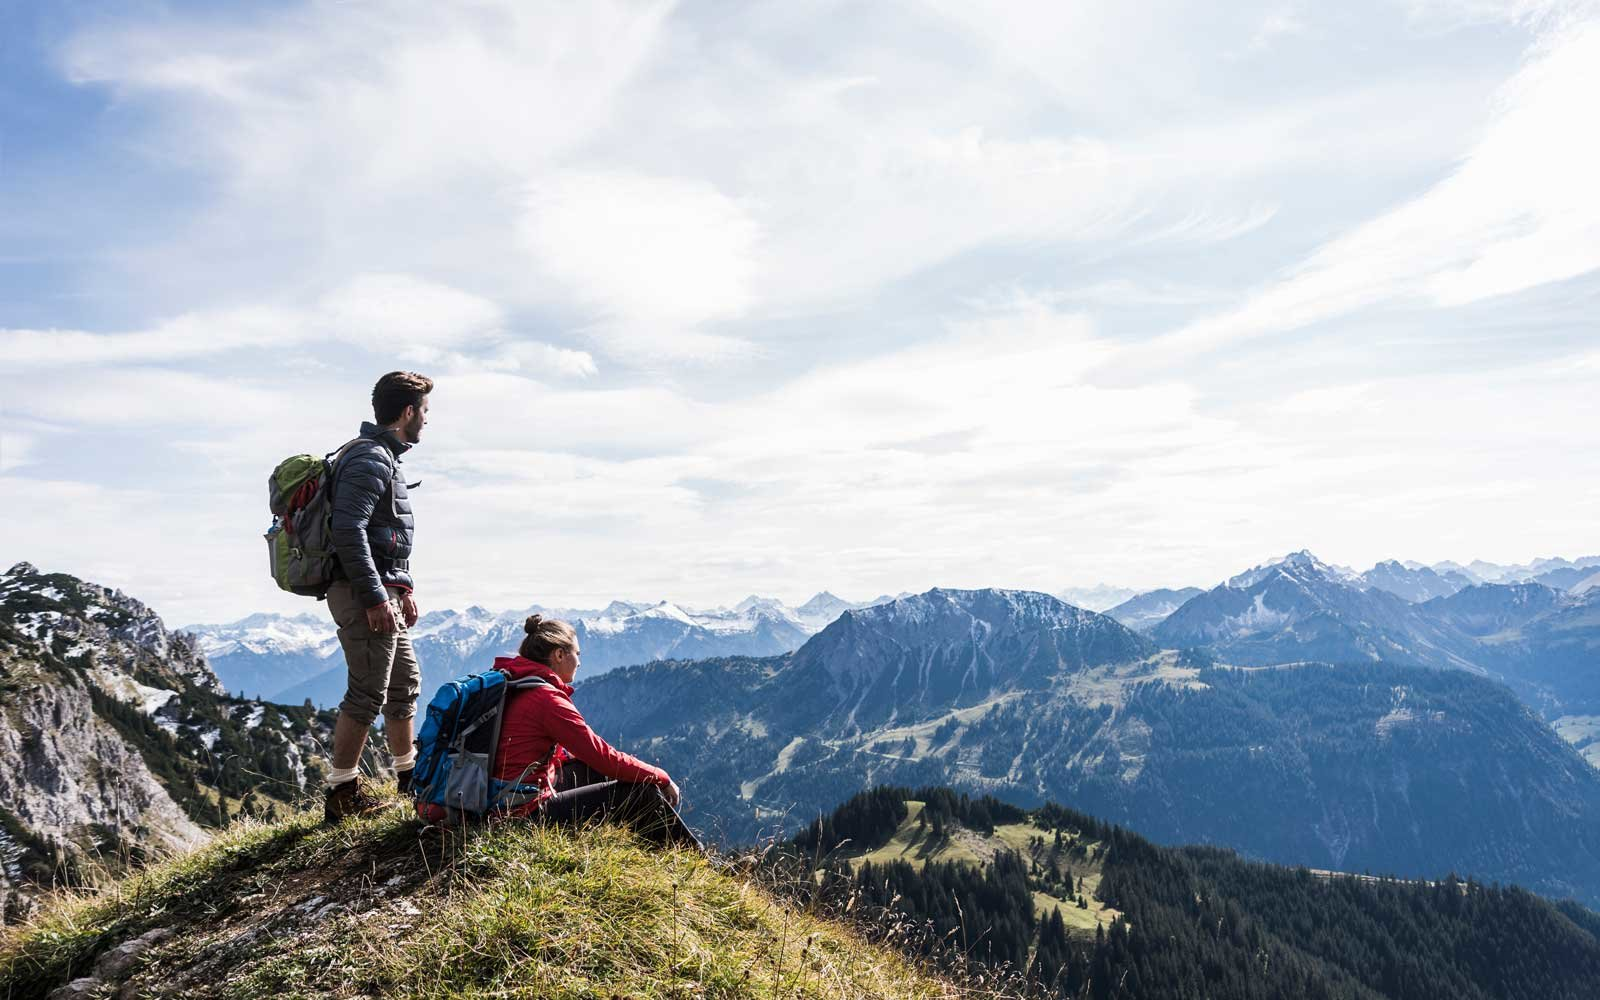 Spending just five minutes in nature is enough to boost your mood, according to a recent study.